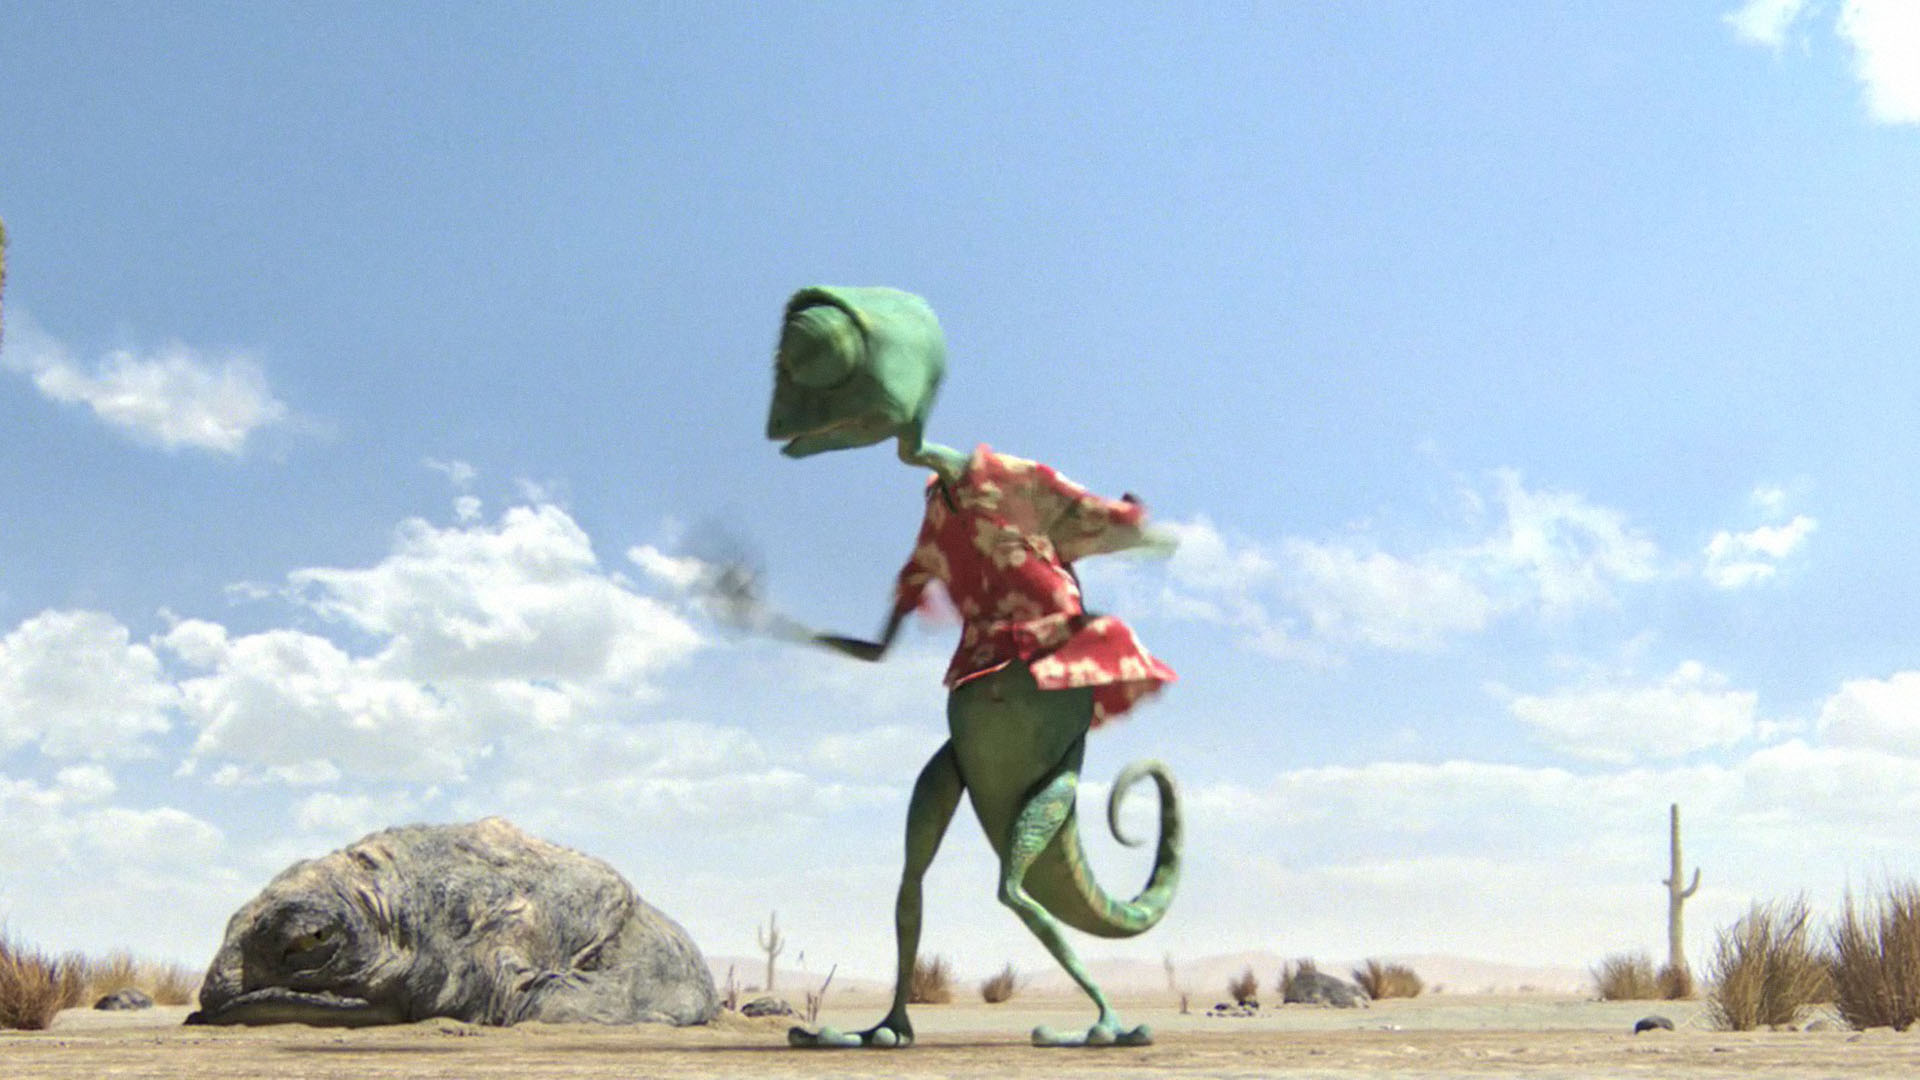 Cars Full Movie Free >> Rango Wallpapers High Quality | Download Free